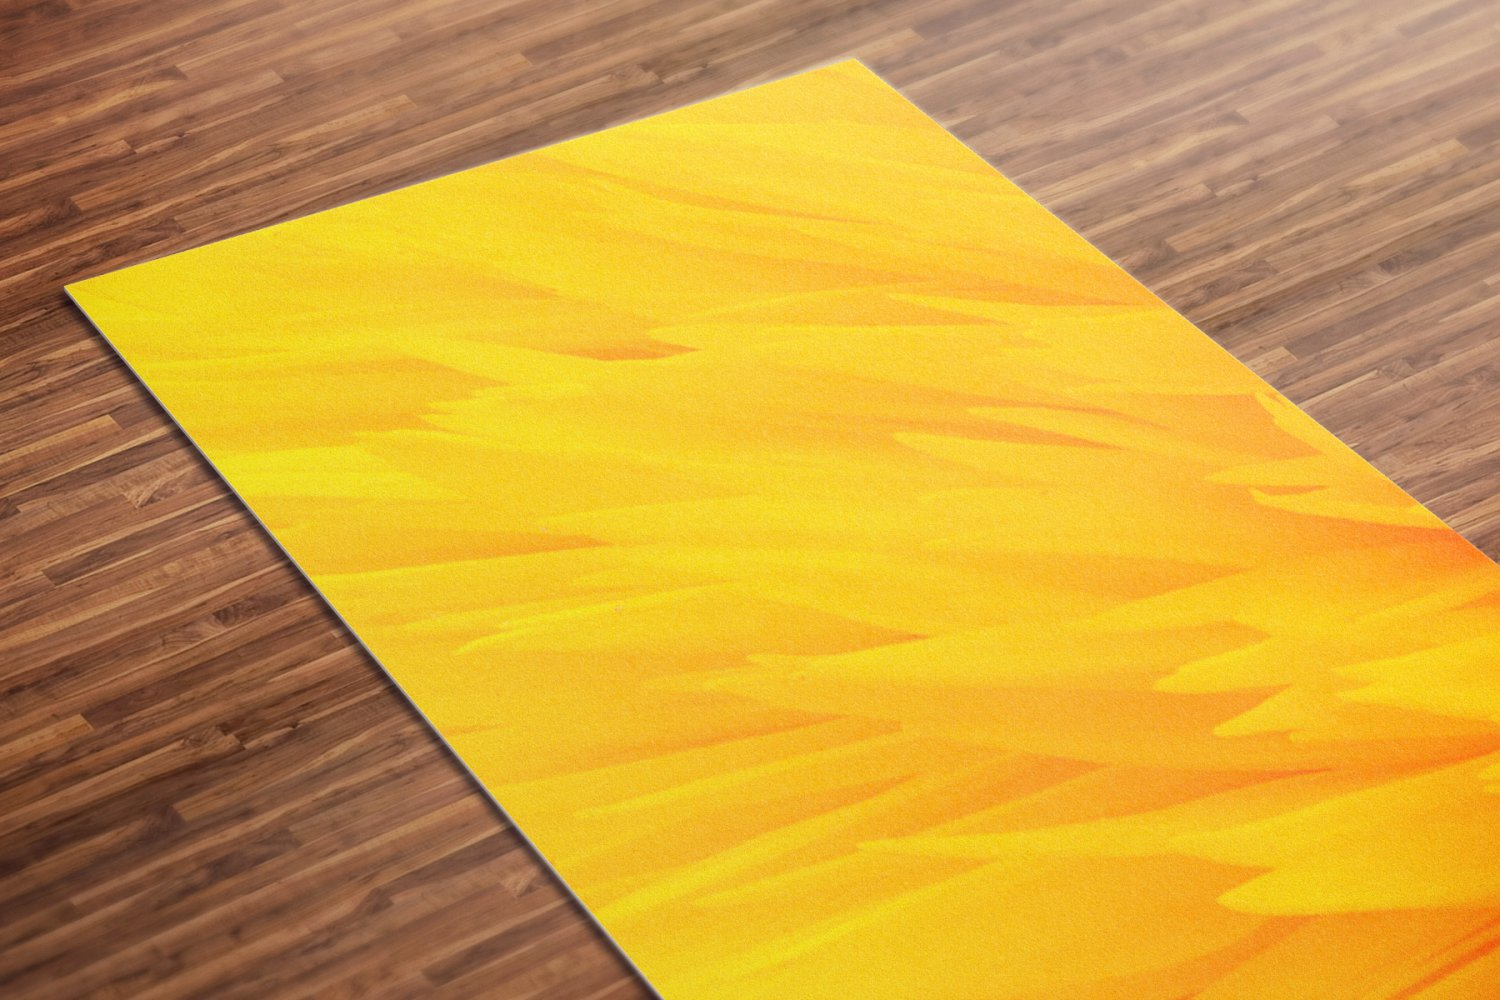 Sunflower Printed Yoga Mat Thick 5 mm 24 x 72 Pilates Yellow Decor Rug Gift Idea Exercise Meditation